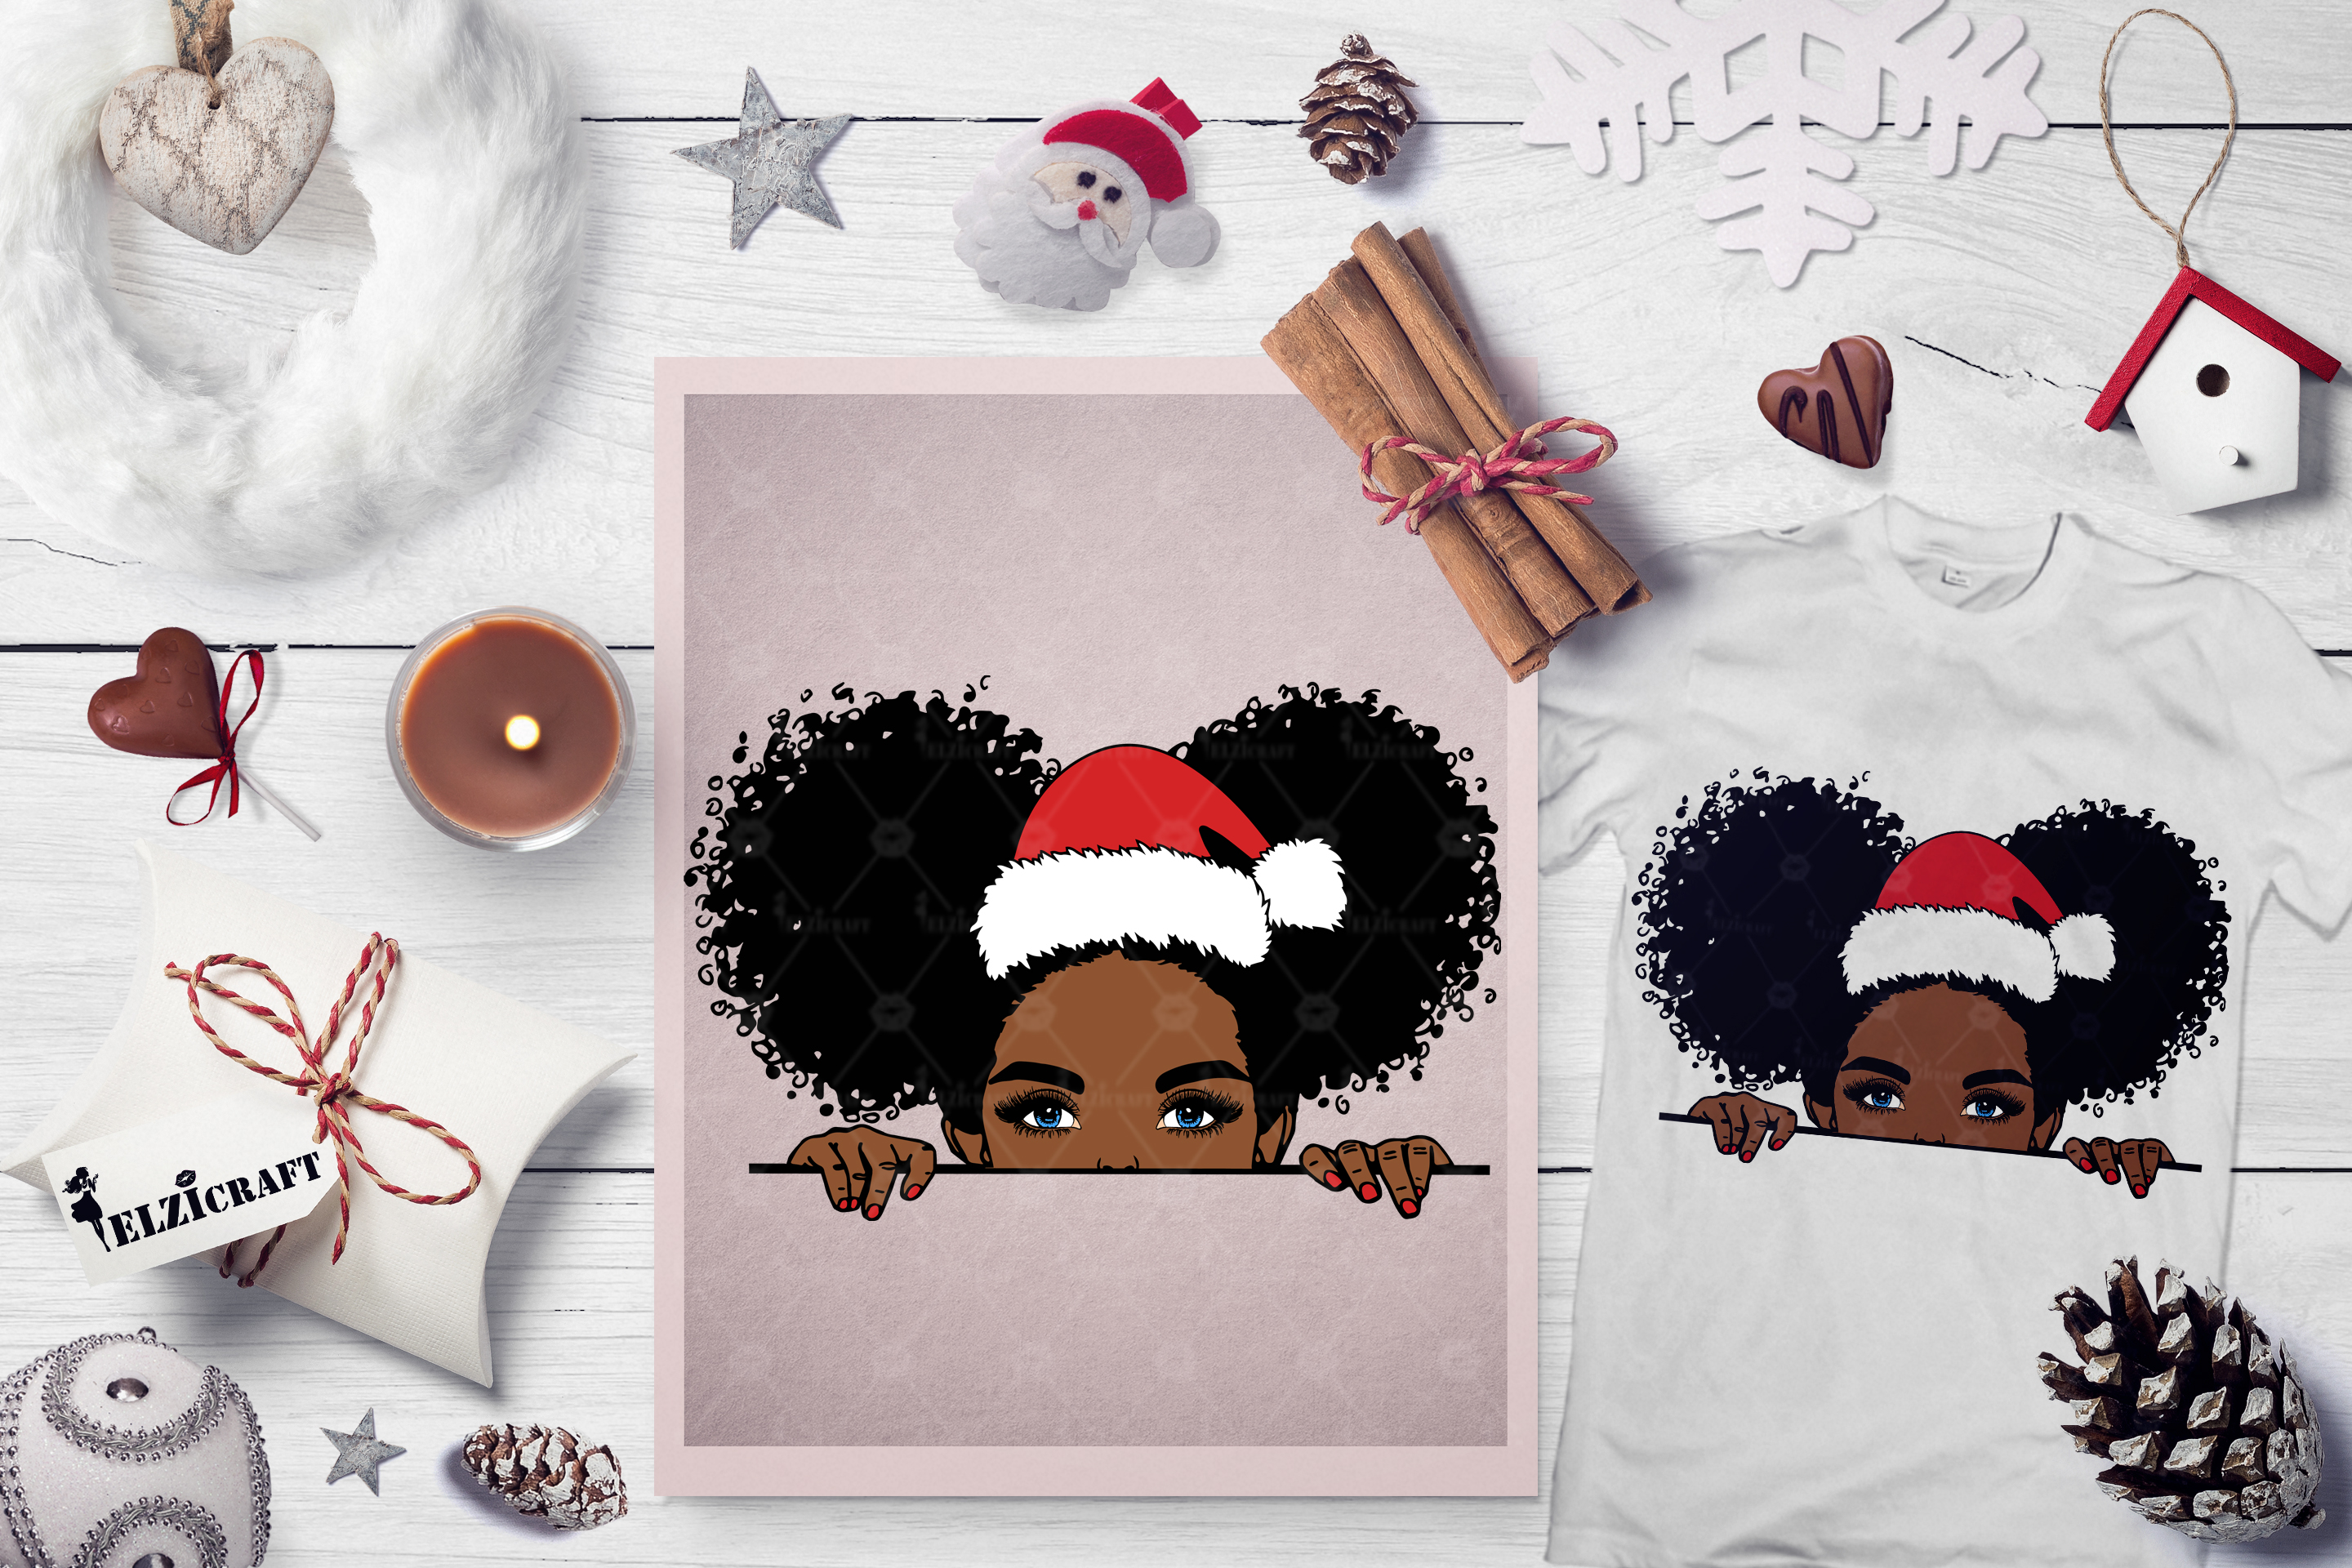 Download Free Christmas Peeking Afro Girl Peek A Boo Graphic By Elzicraft for Cricut Explore, Silhouette and other cutting machines.